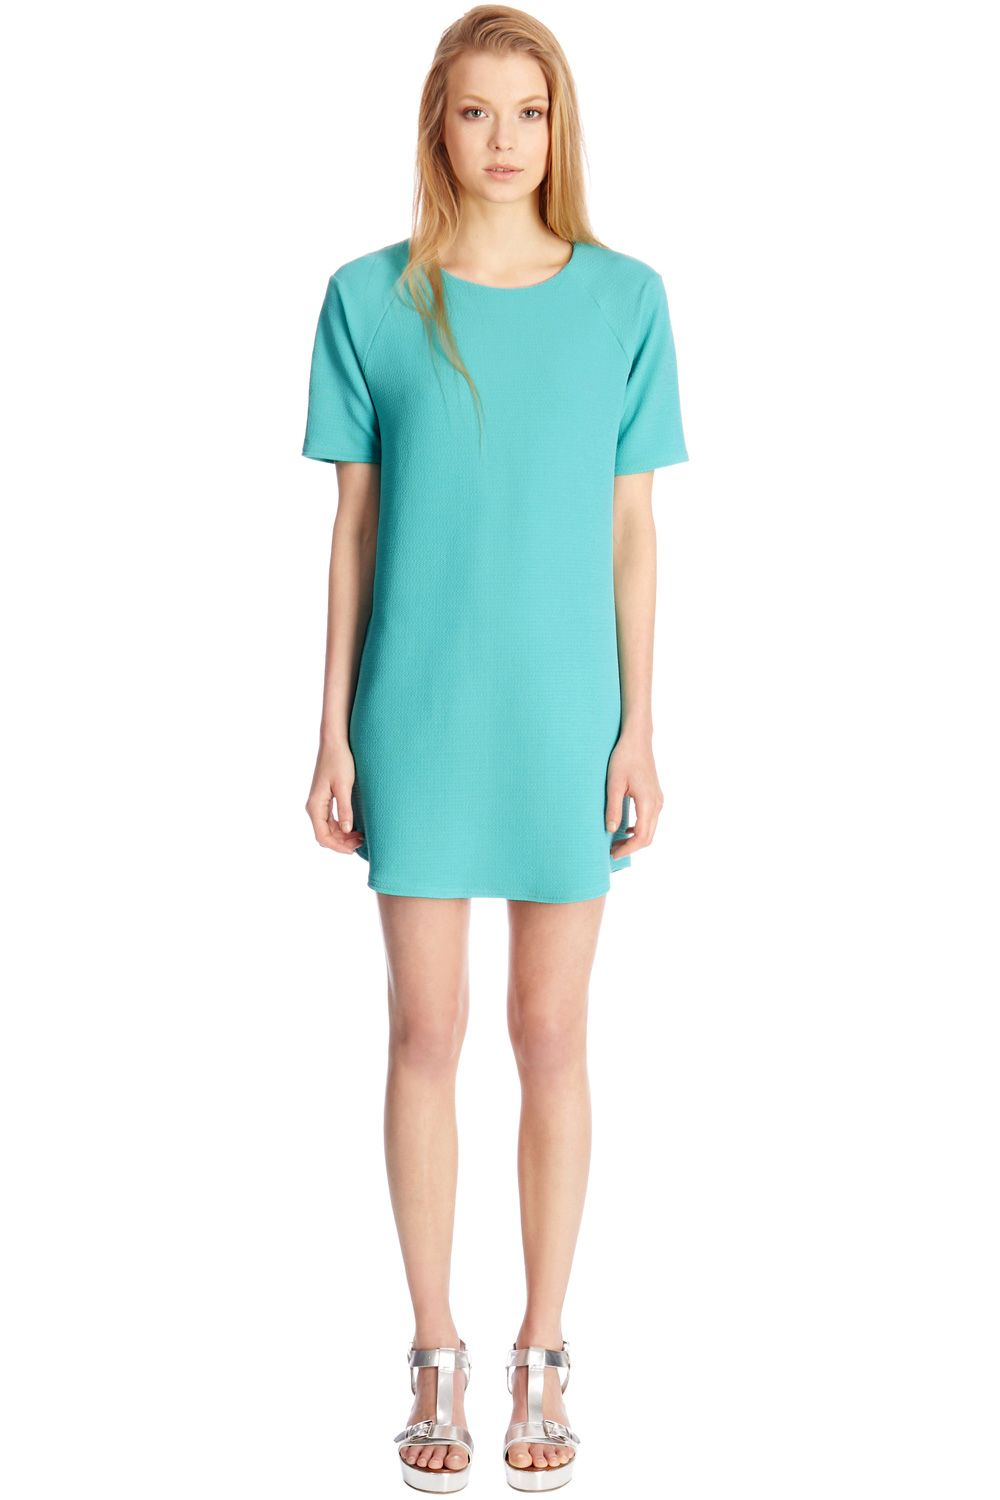 Textured crepe shift dress